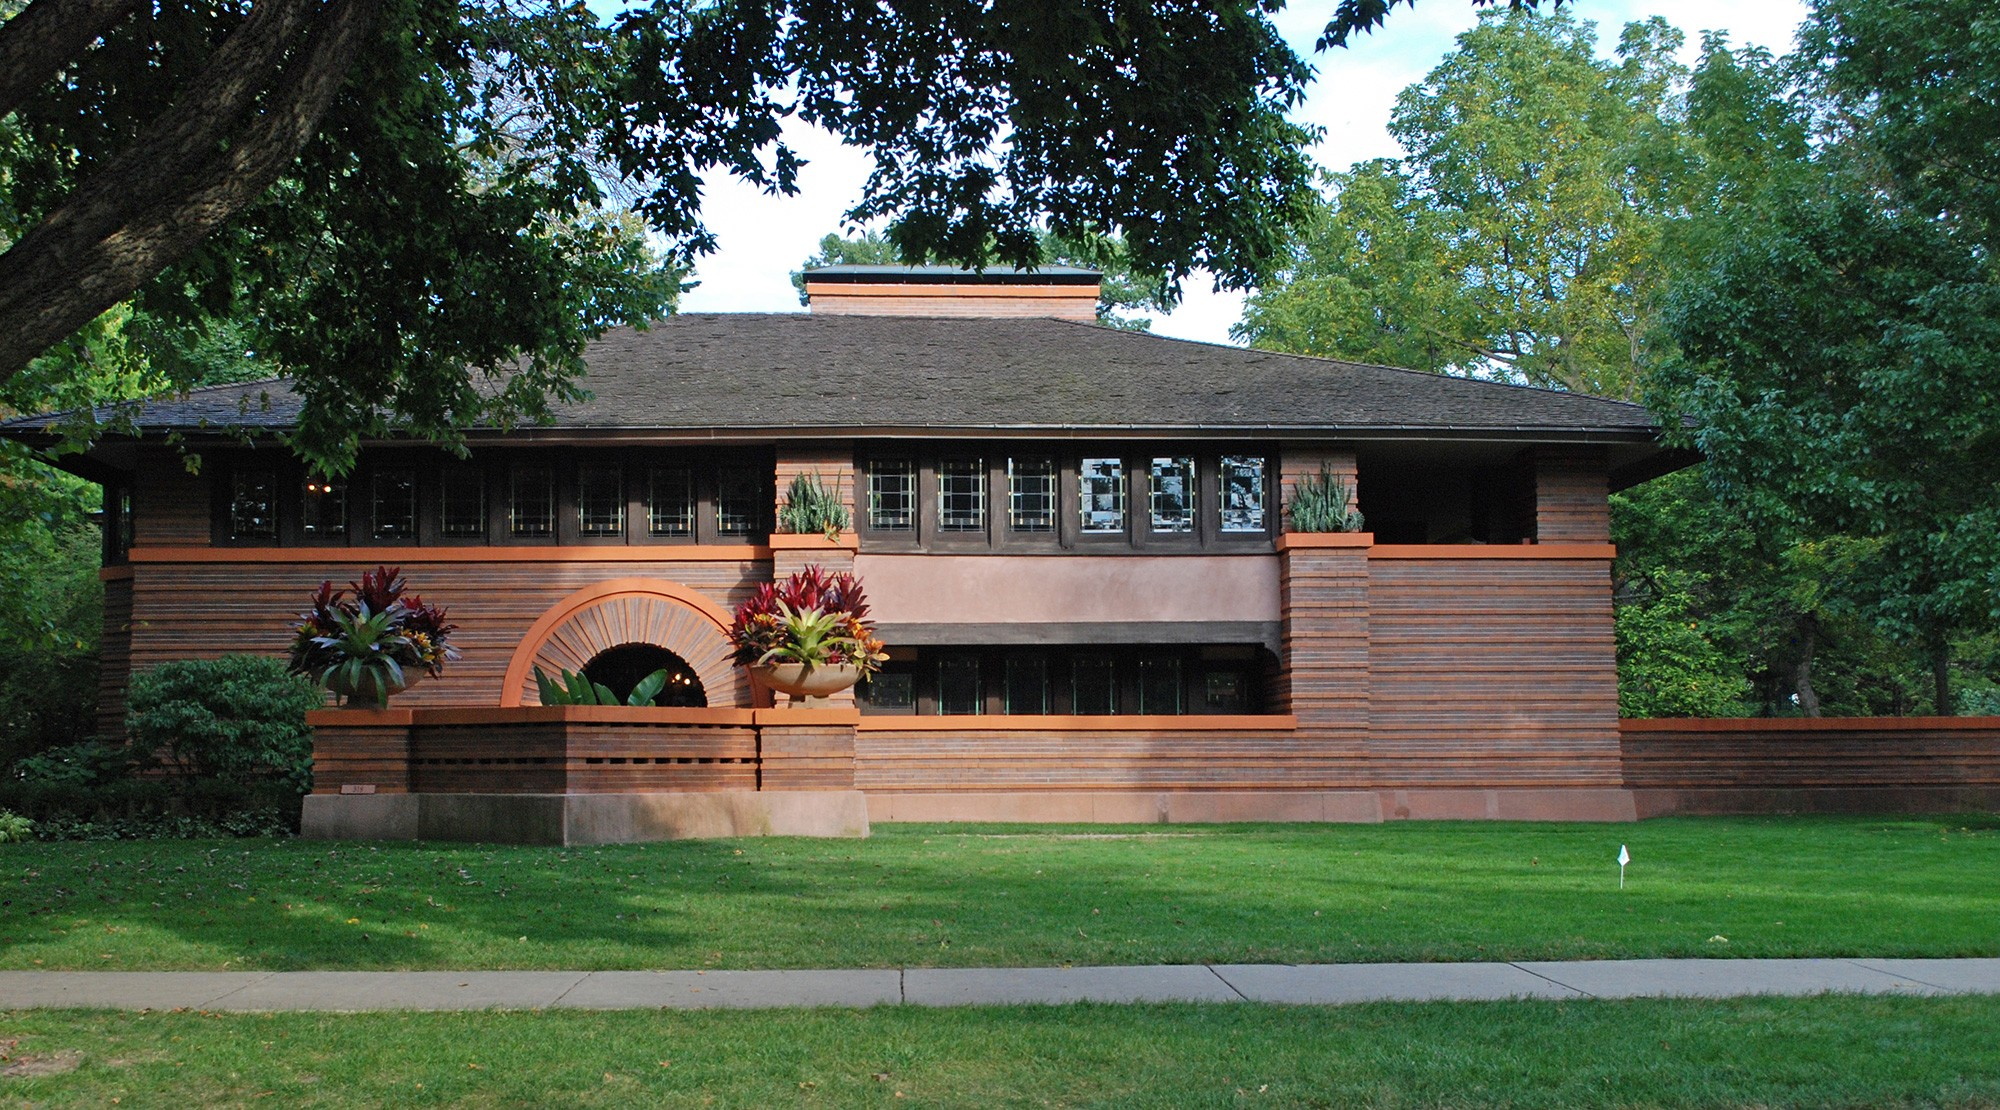 frank lloyd wright neighborhoods by bus tours chicago architecture center cac. Black Bedroom Furniture Sets. Home Design Ideas